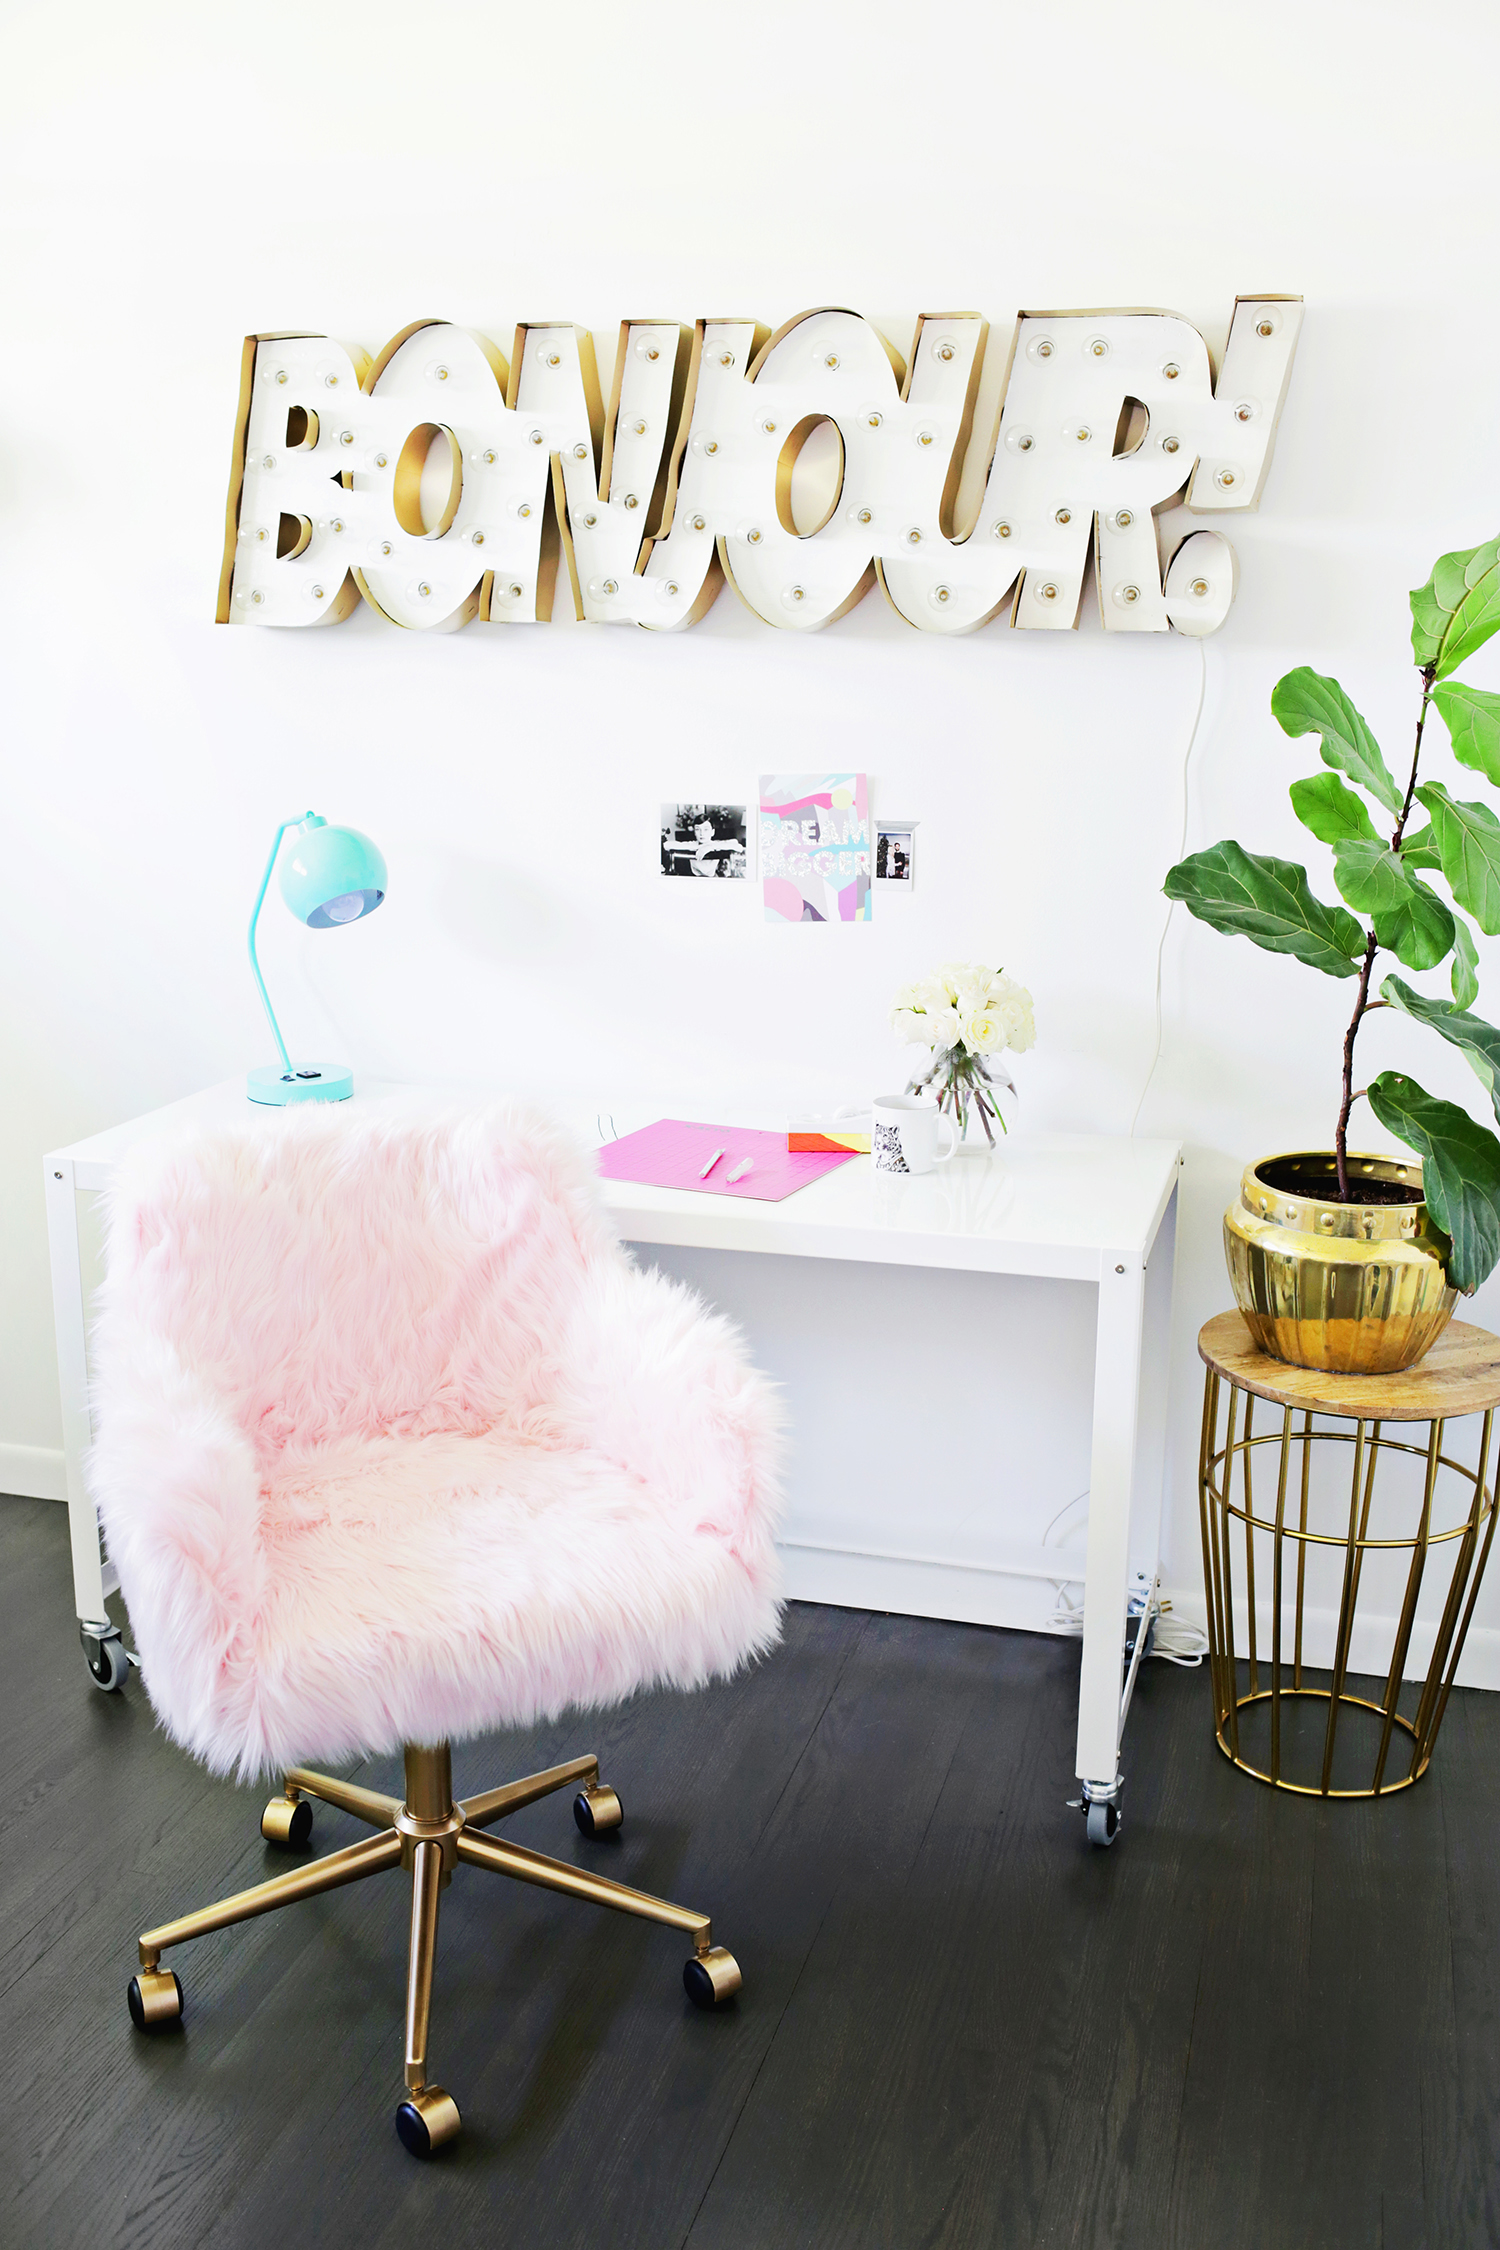 DIY fur chair makeover